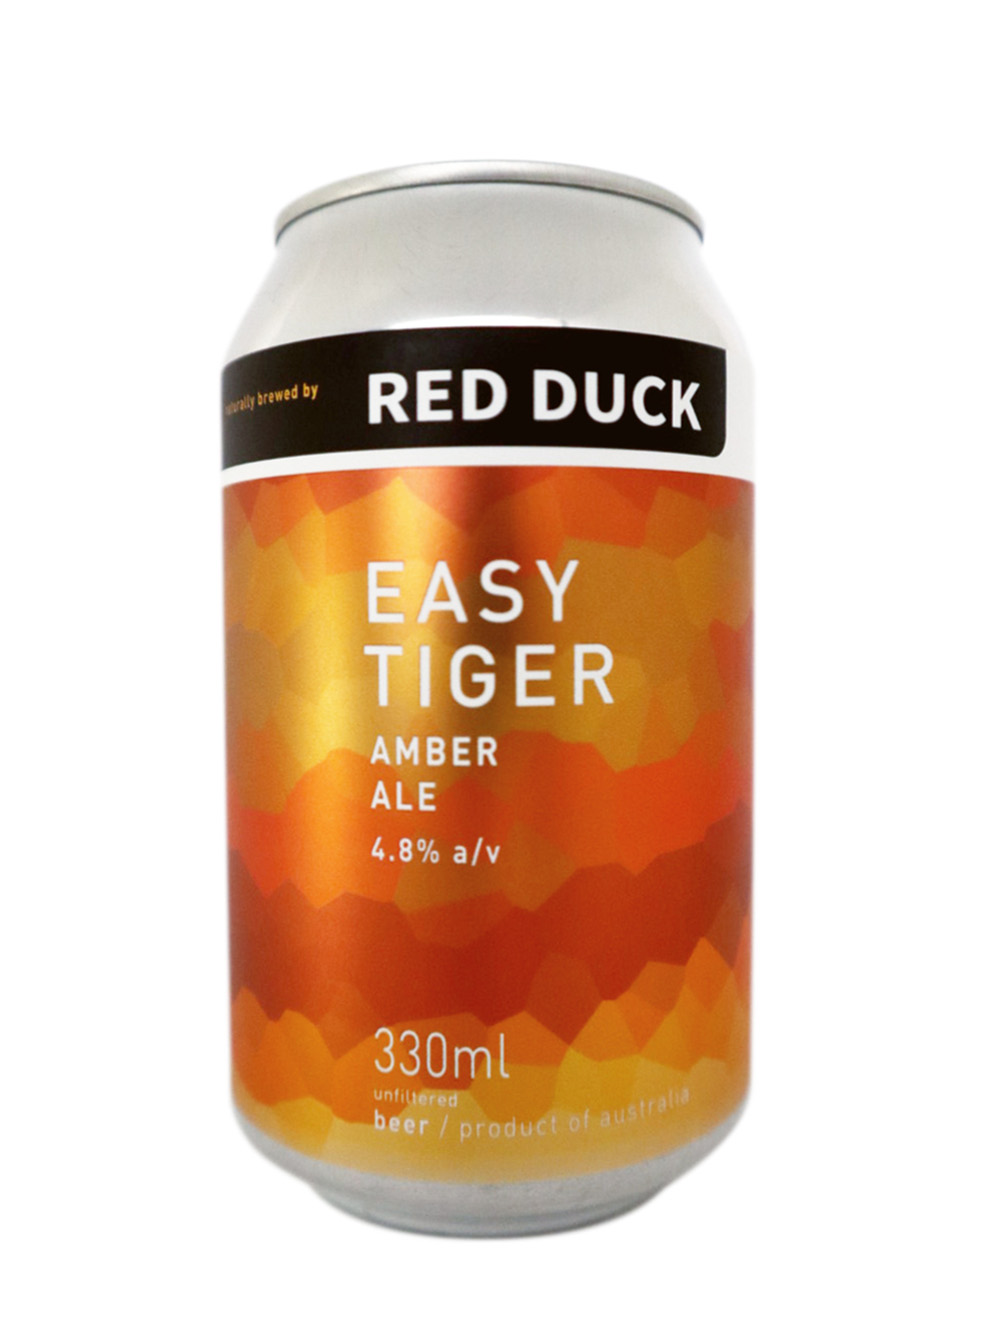 https://www.redduckbeer.com.au/wp-content/uploads/2014/11/easy-tiger-amber-can-WEB.jpg